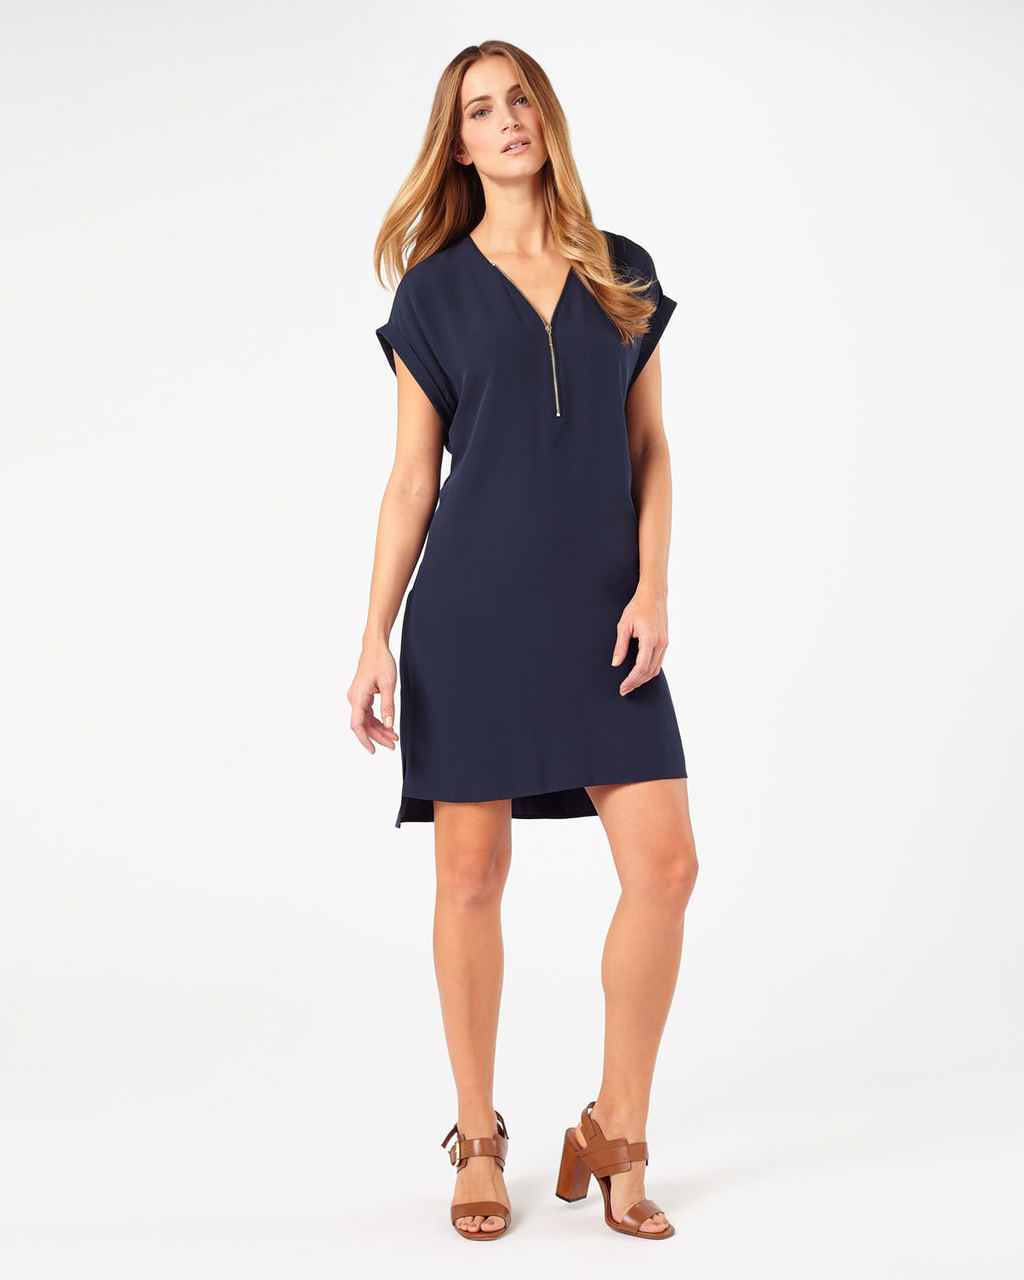 Remi Crepe Dress - style: shift; length: mid thigh; neckline: low v-neck; sleeve style: capped; pattern: plain; bust detail: buttons at bust (in middle at breastbone)/zip detail at bust; predominant colour: navy; occasions: evening, creative work; fit: straight cut; fibres: polyester/polyamide - 100%; sleeve length: short sleeve; texture group: crepes; pattern type: fabric; embellishment: zips; season: s/s 2016; wardrobe: highlight